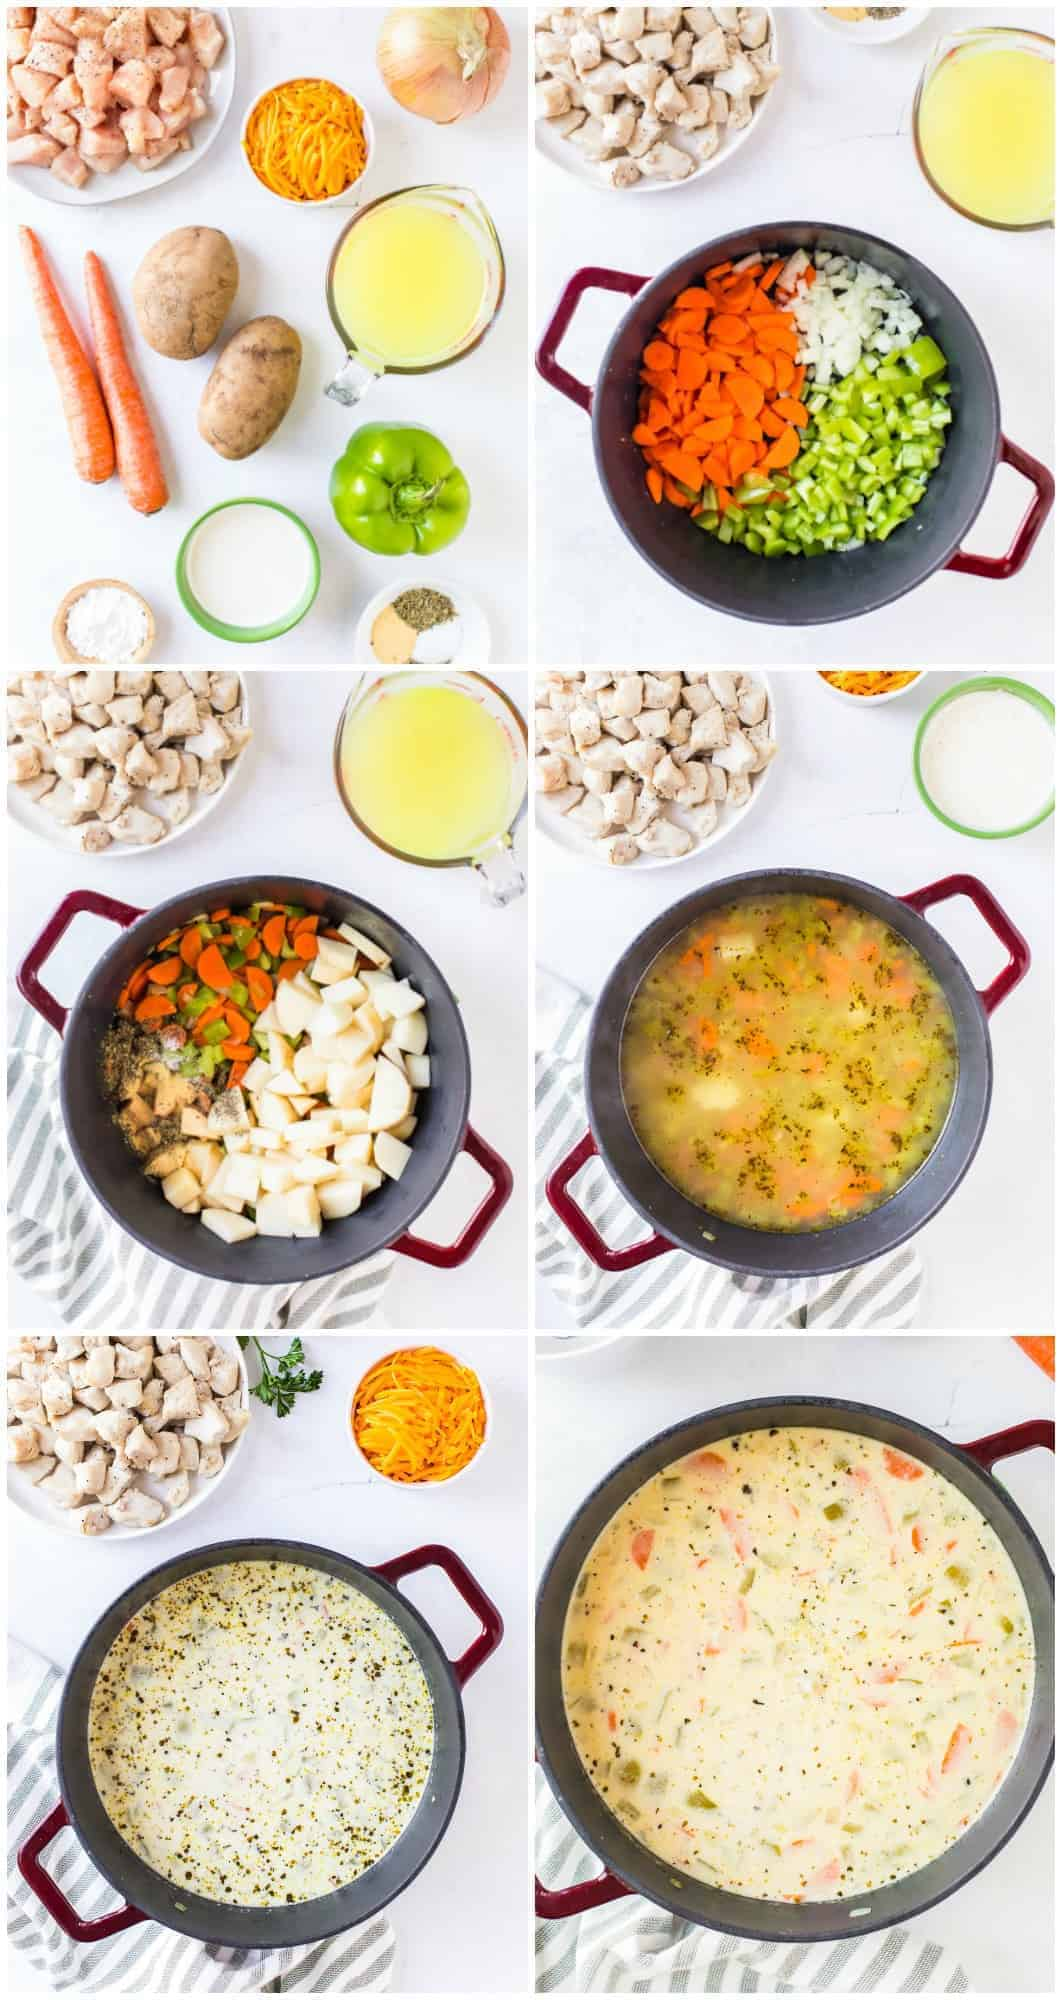 step by step photos of how to make cheesy chicken chowder